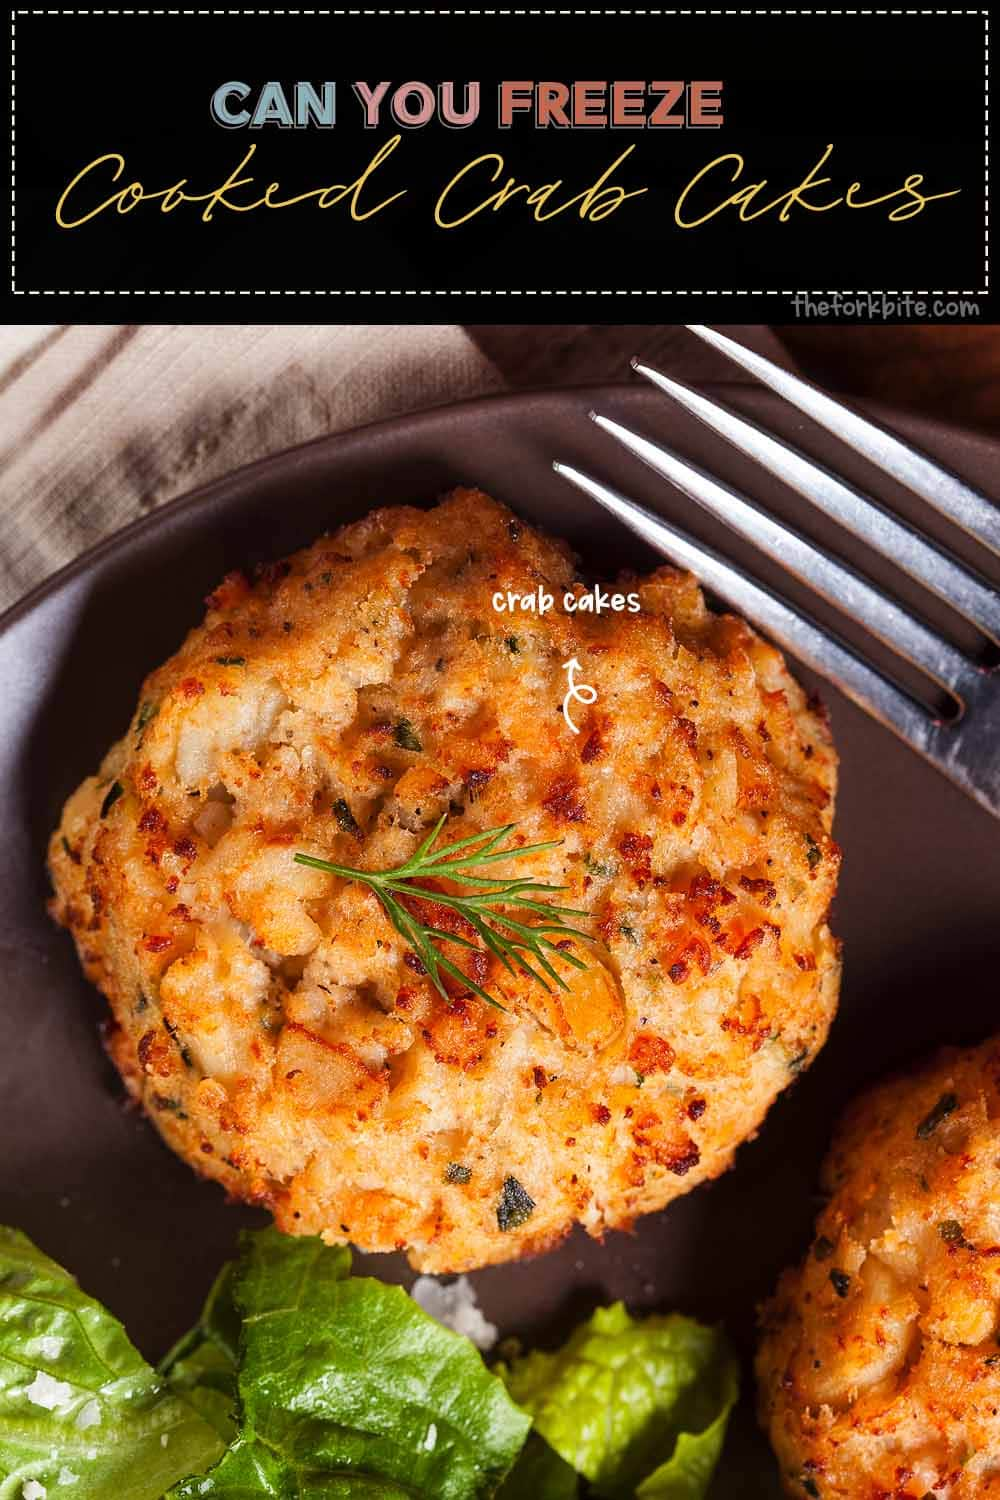 Crab cakes are eminently freezable. You can freeze them when they are either cooked or uncooked. However, for the best results, I would recommend freezing them while they are still raw based on my experience.